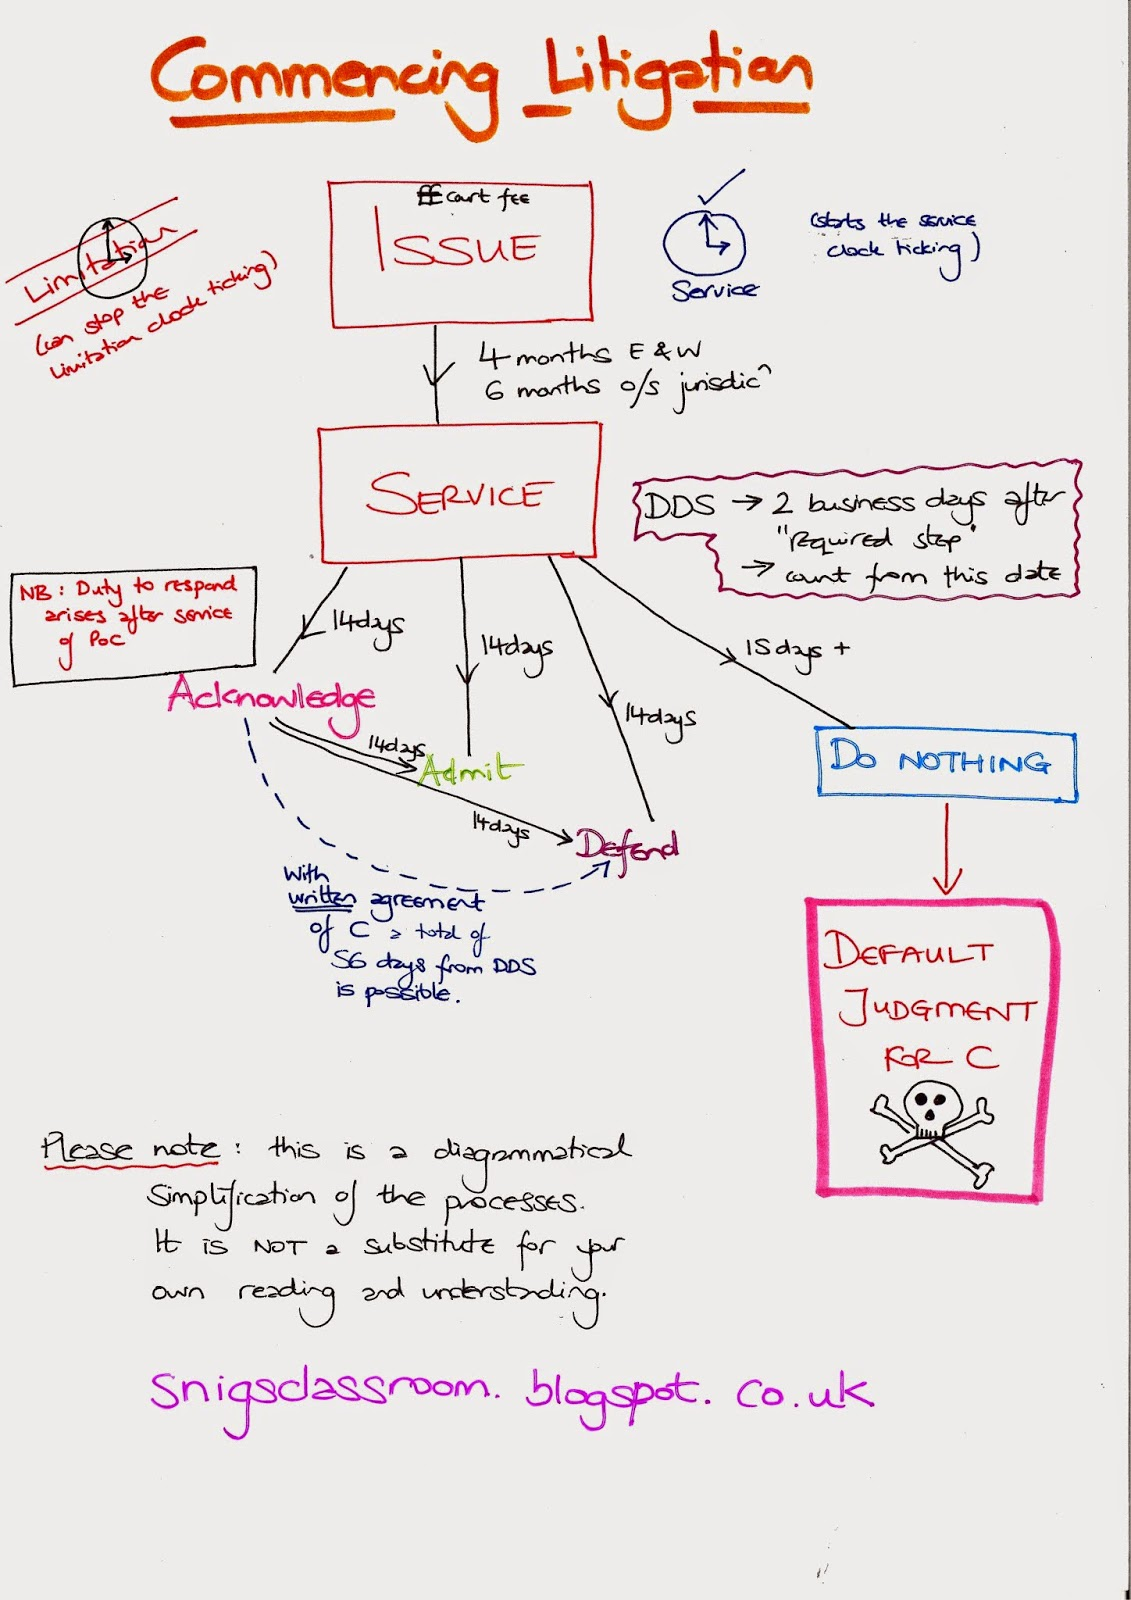 realise that perhaps the diagram on its own doesn   help you very much so here is  video uploaded to youtube some time ago it explains thinking also snig  classroom go with flow flowcharts rh snigsclassroomspot